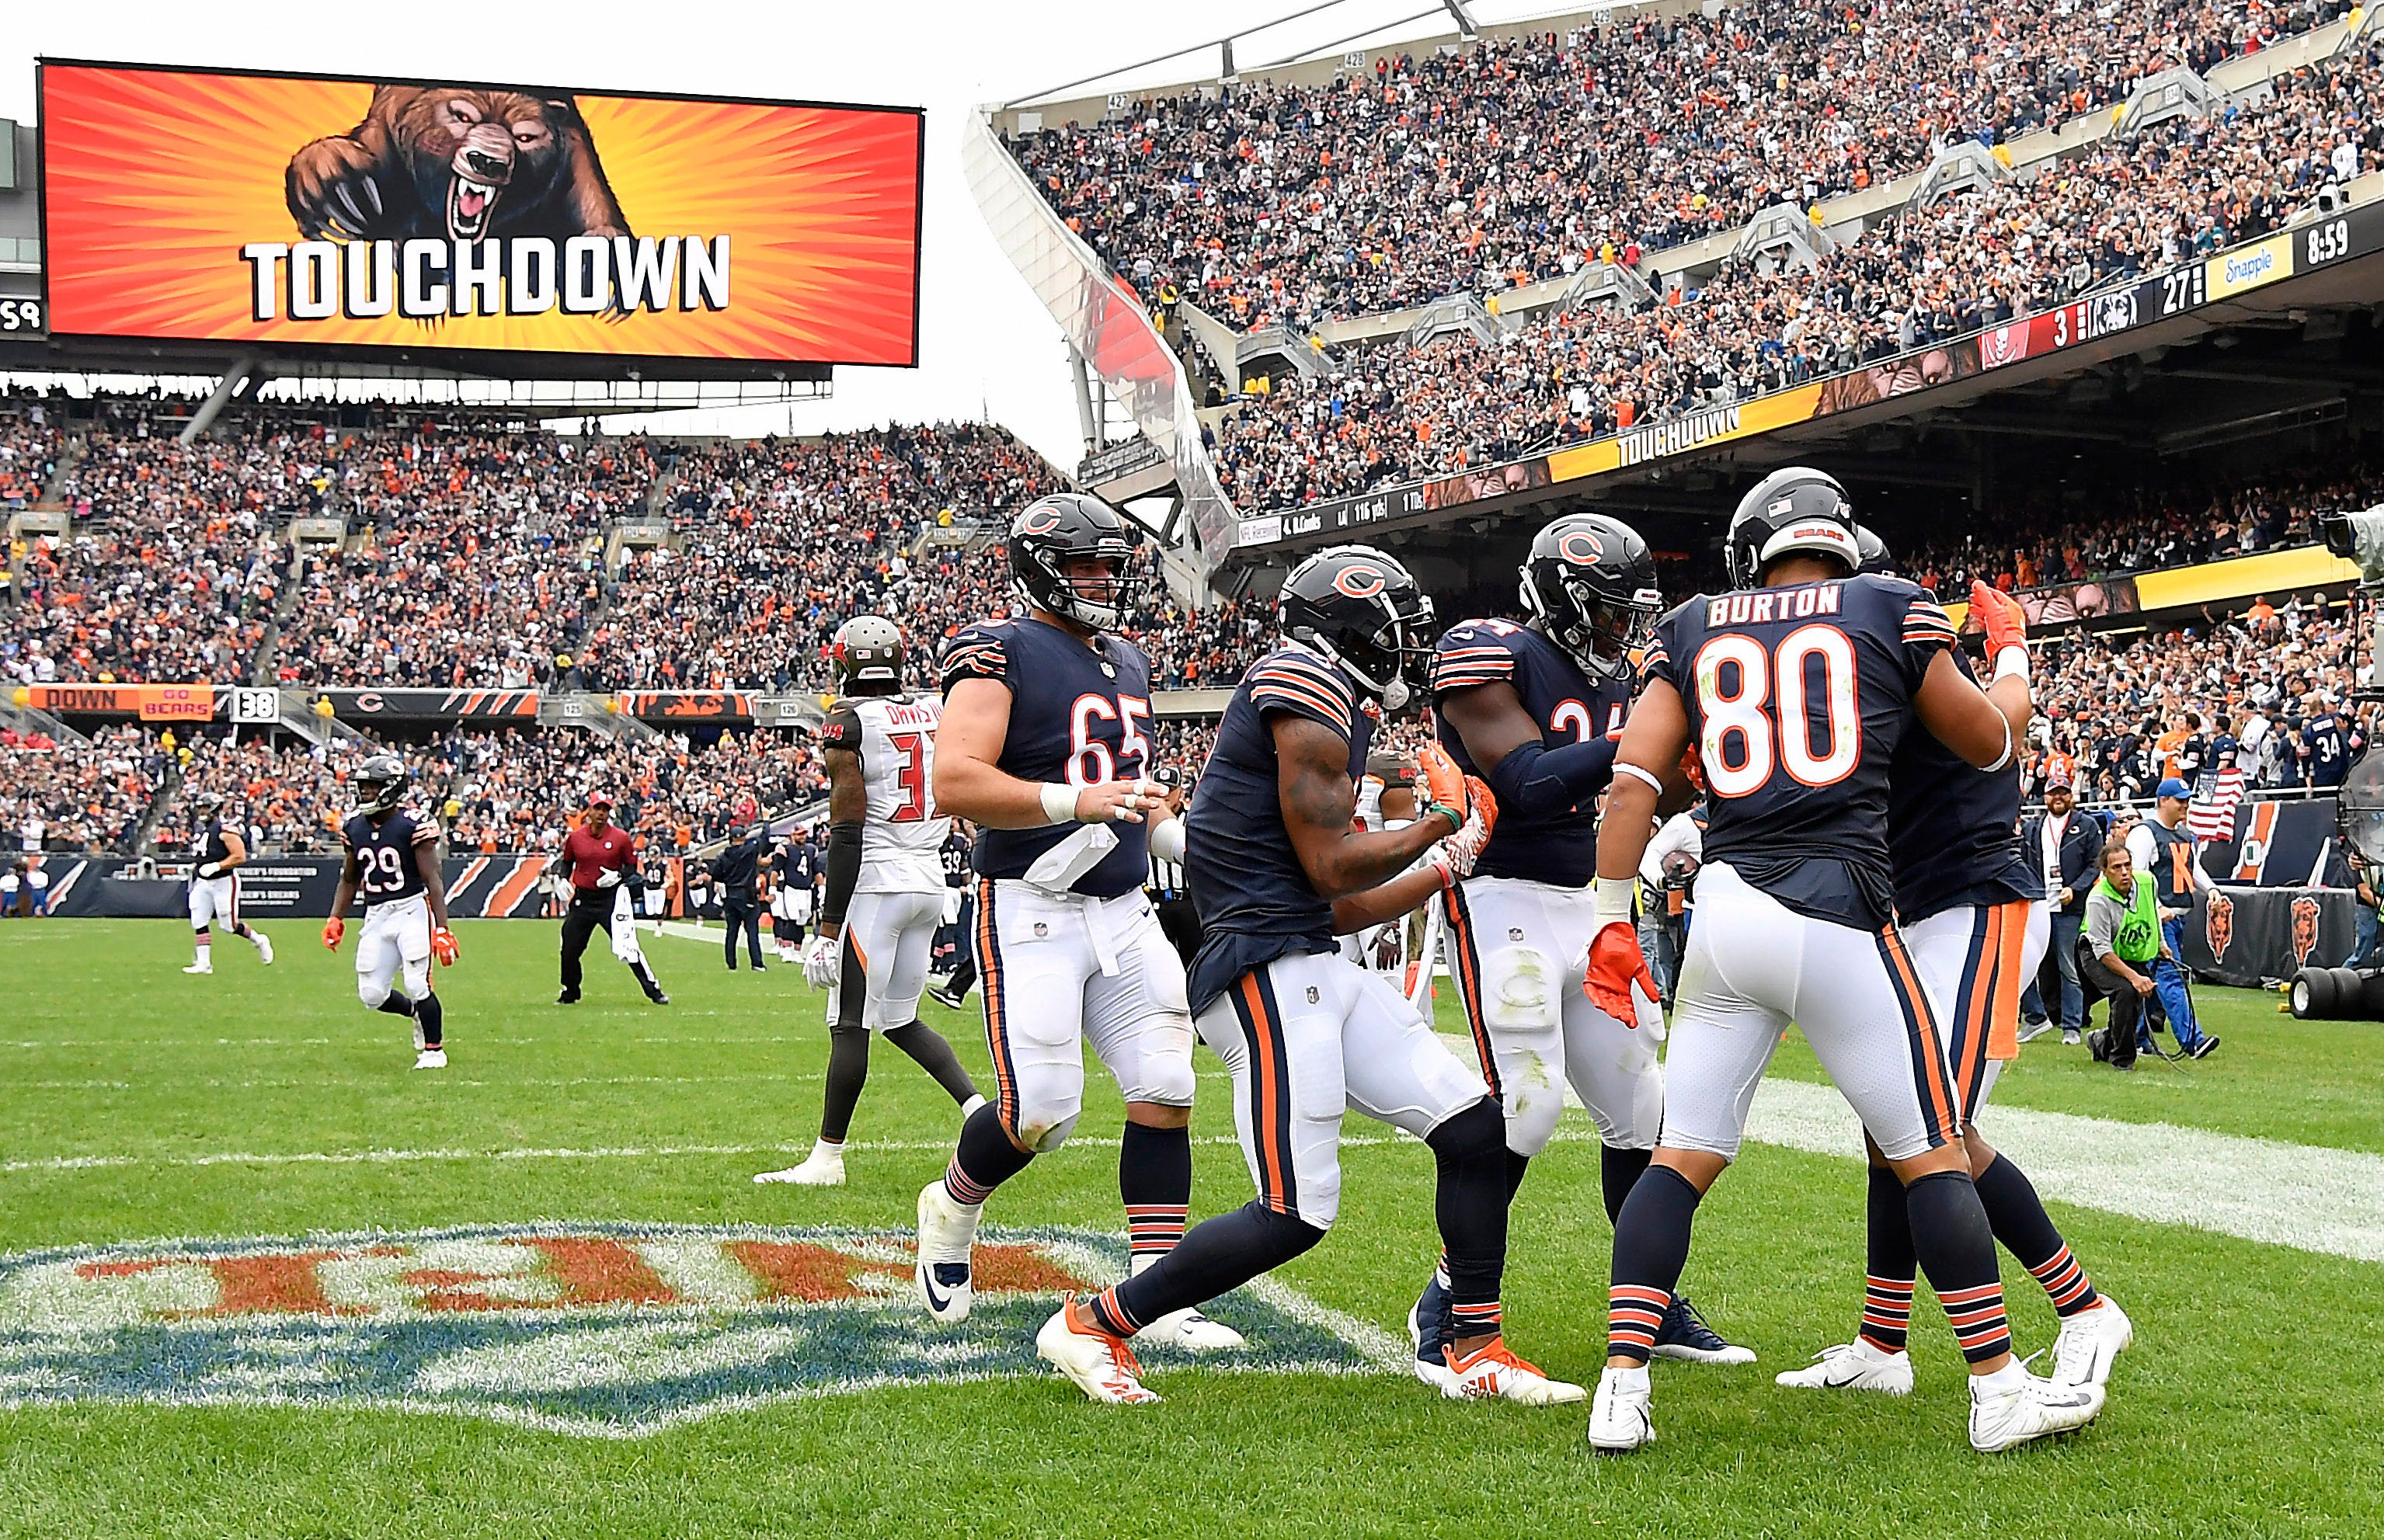 The Chicago Bears celebrate after wide receiver Josh Bellamy scored a touchdown in the second quarter against the Tampa Bay Buccaneers at Soldier Field.